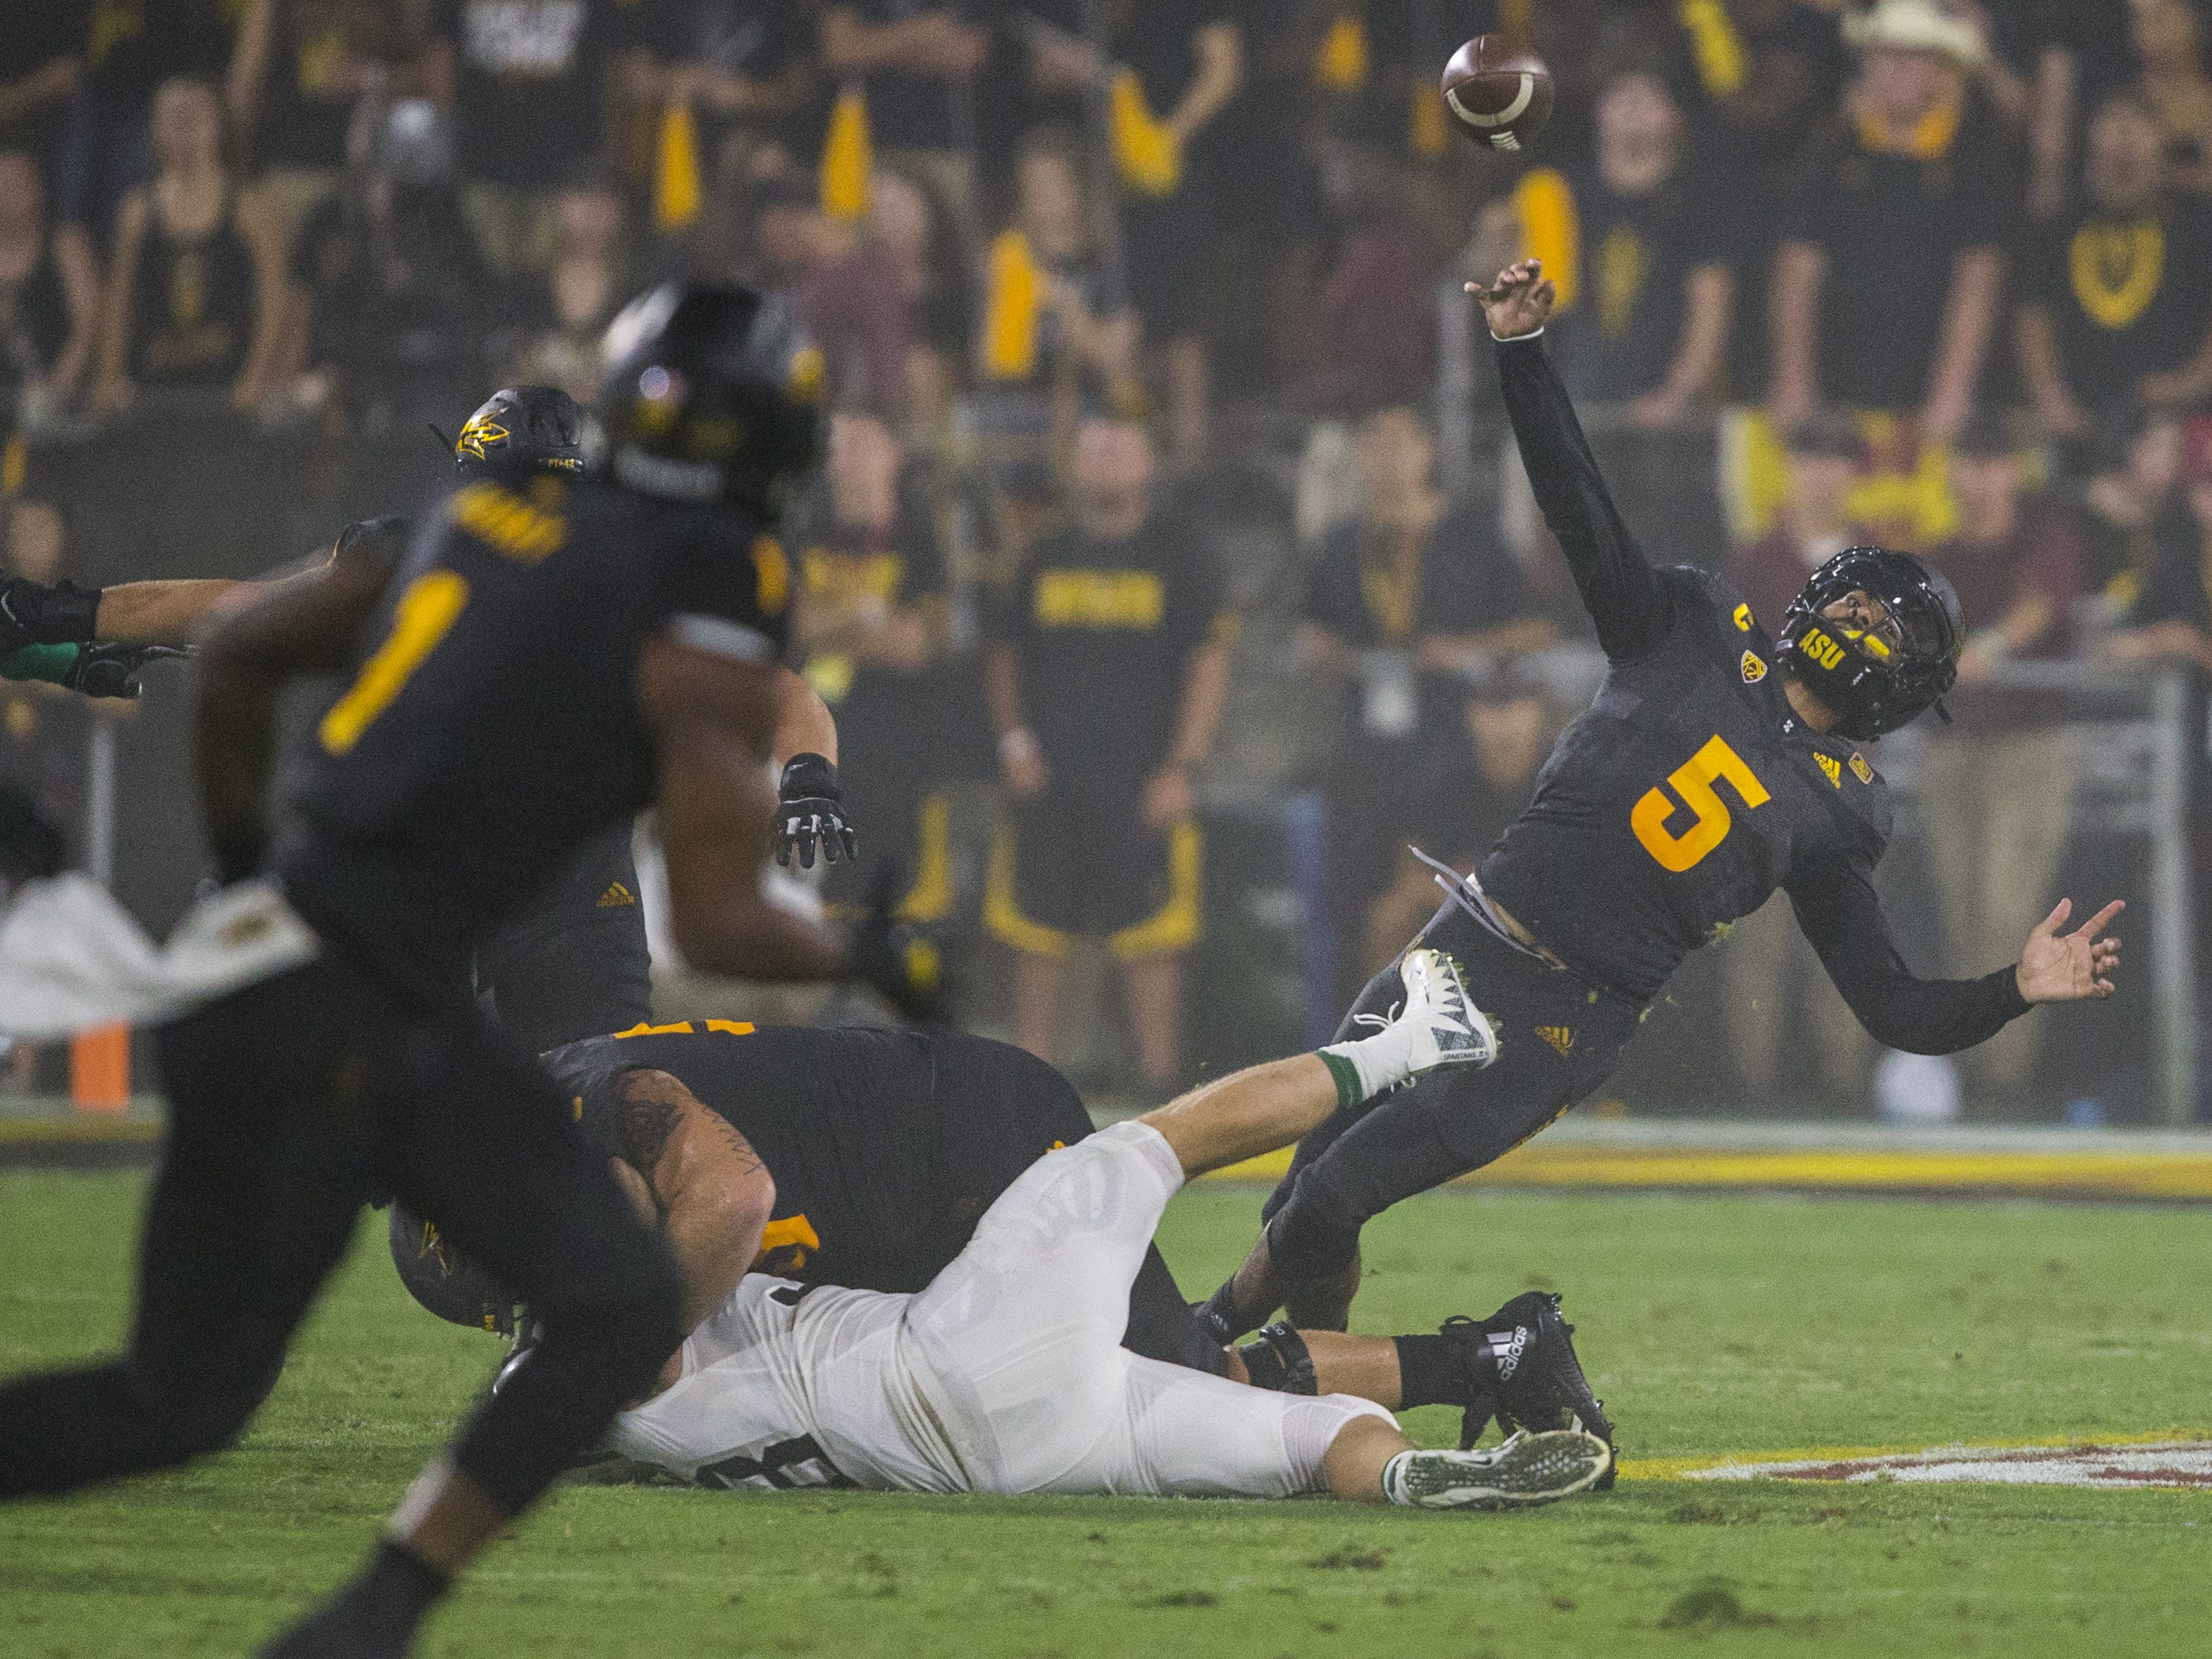 Arizona State's Manny Wilkins throws while being tripped against Michigan State in the 2nd quarter on Saturday, Sept. 8, 2018, at Sun Devil Stadium in Tempe, Ariz.